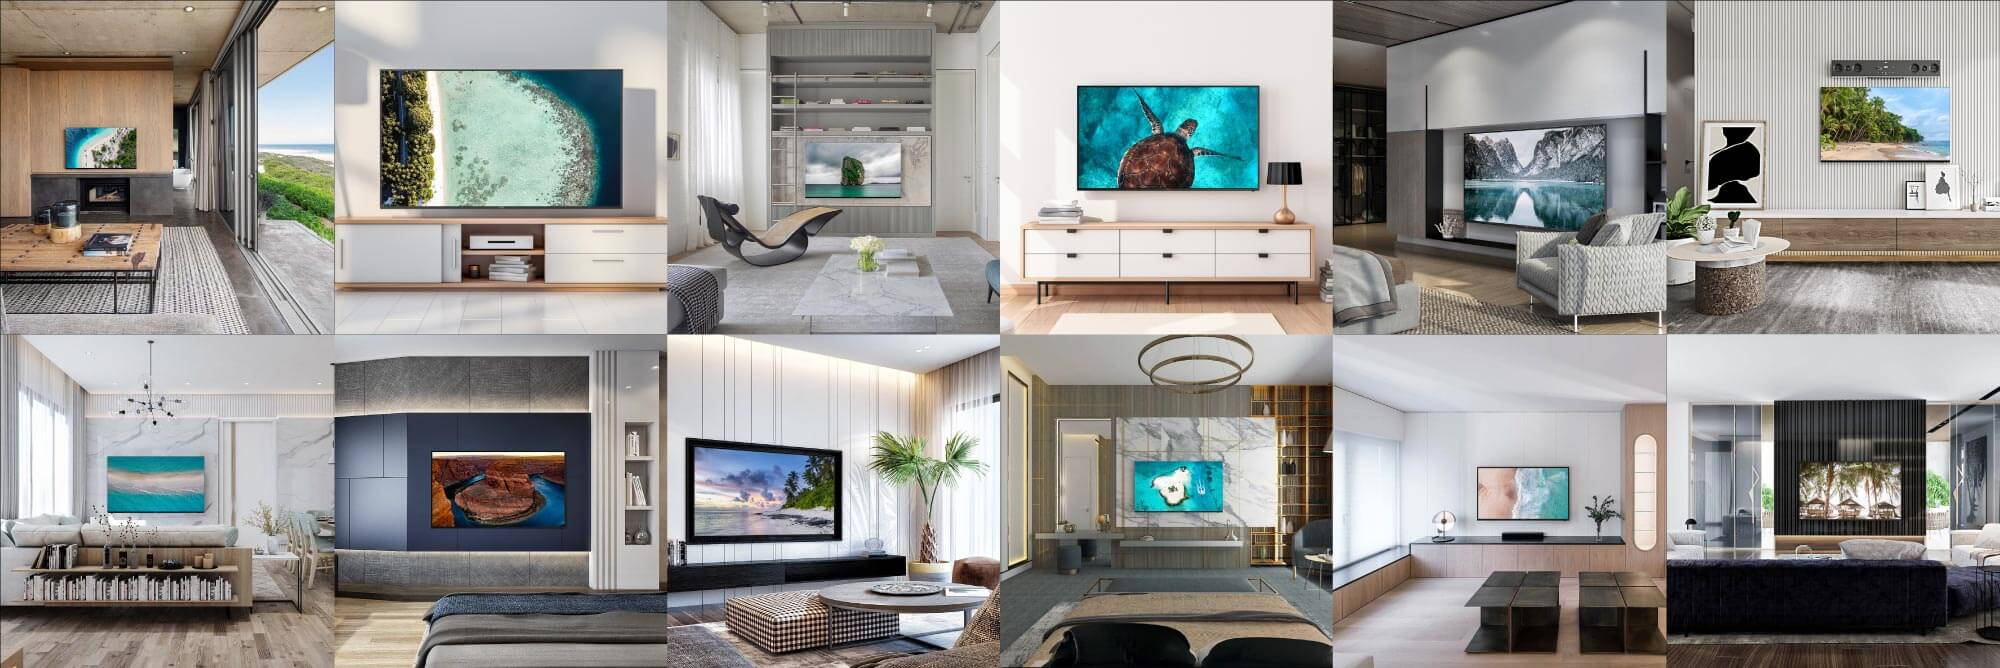 WAVE TVs look amazing in every living room from luxurious to minimalist